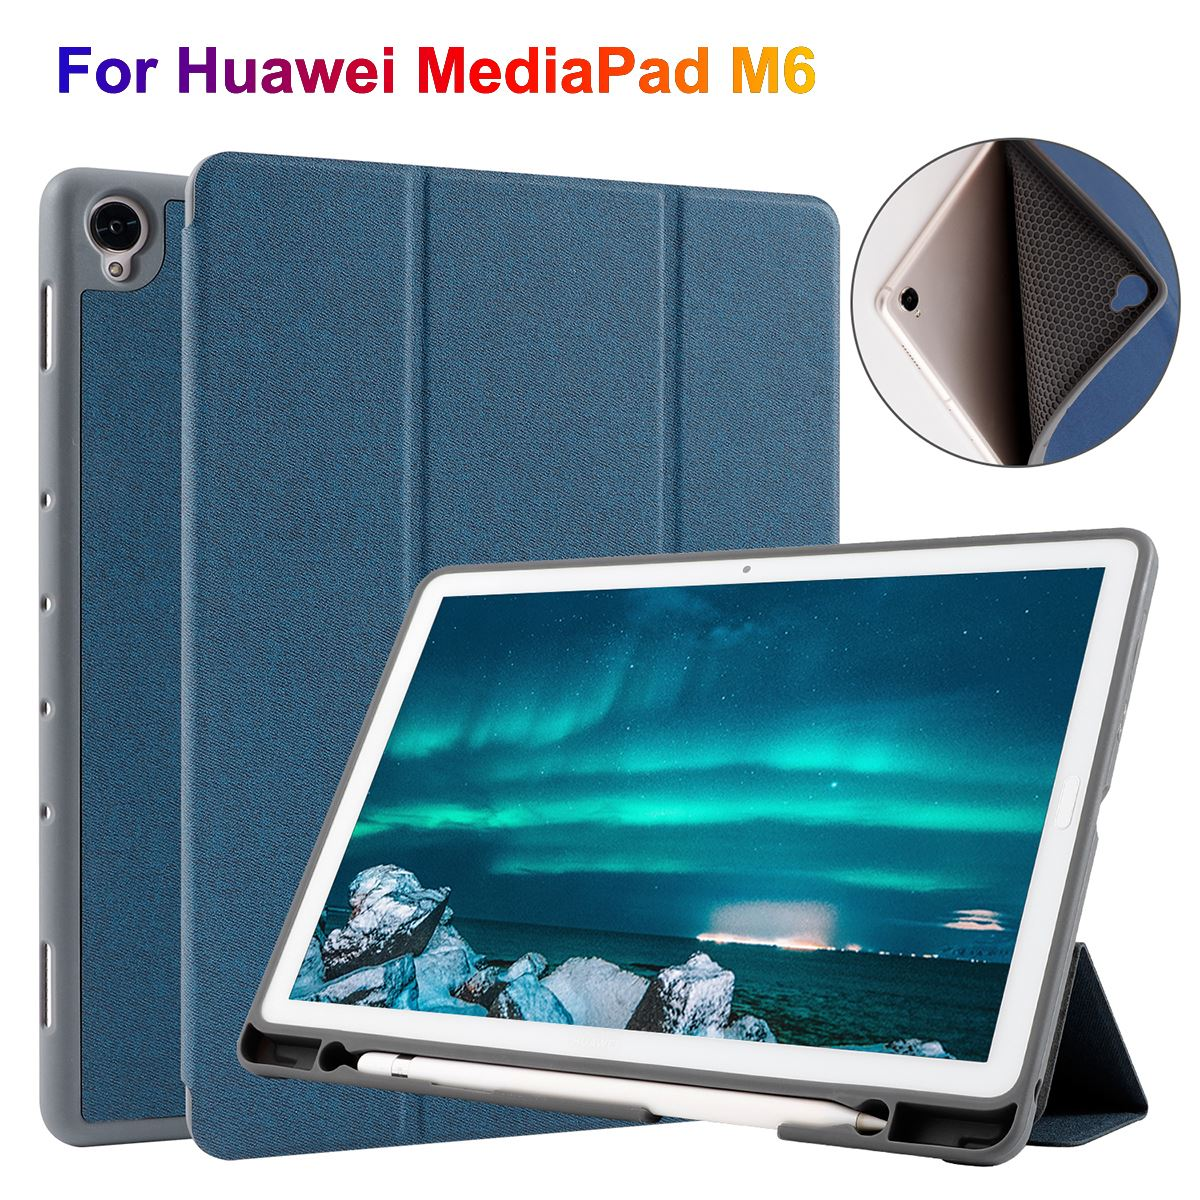 TPU Shell Leather Case Cover For Huawei MediaPad M6 10.8 Inch Tablet Protective Cover With Pen Slot For Huawei M6 10.8 Case|Tablets & e-Books Case| |  - title=